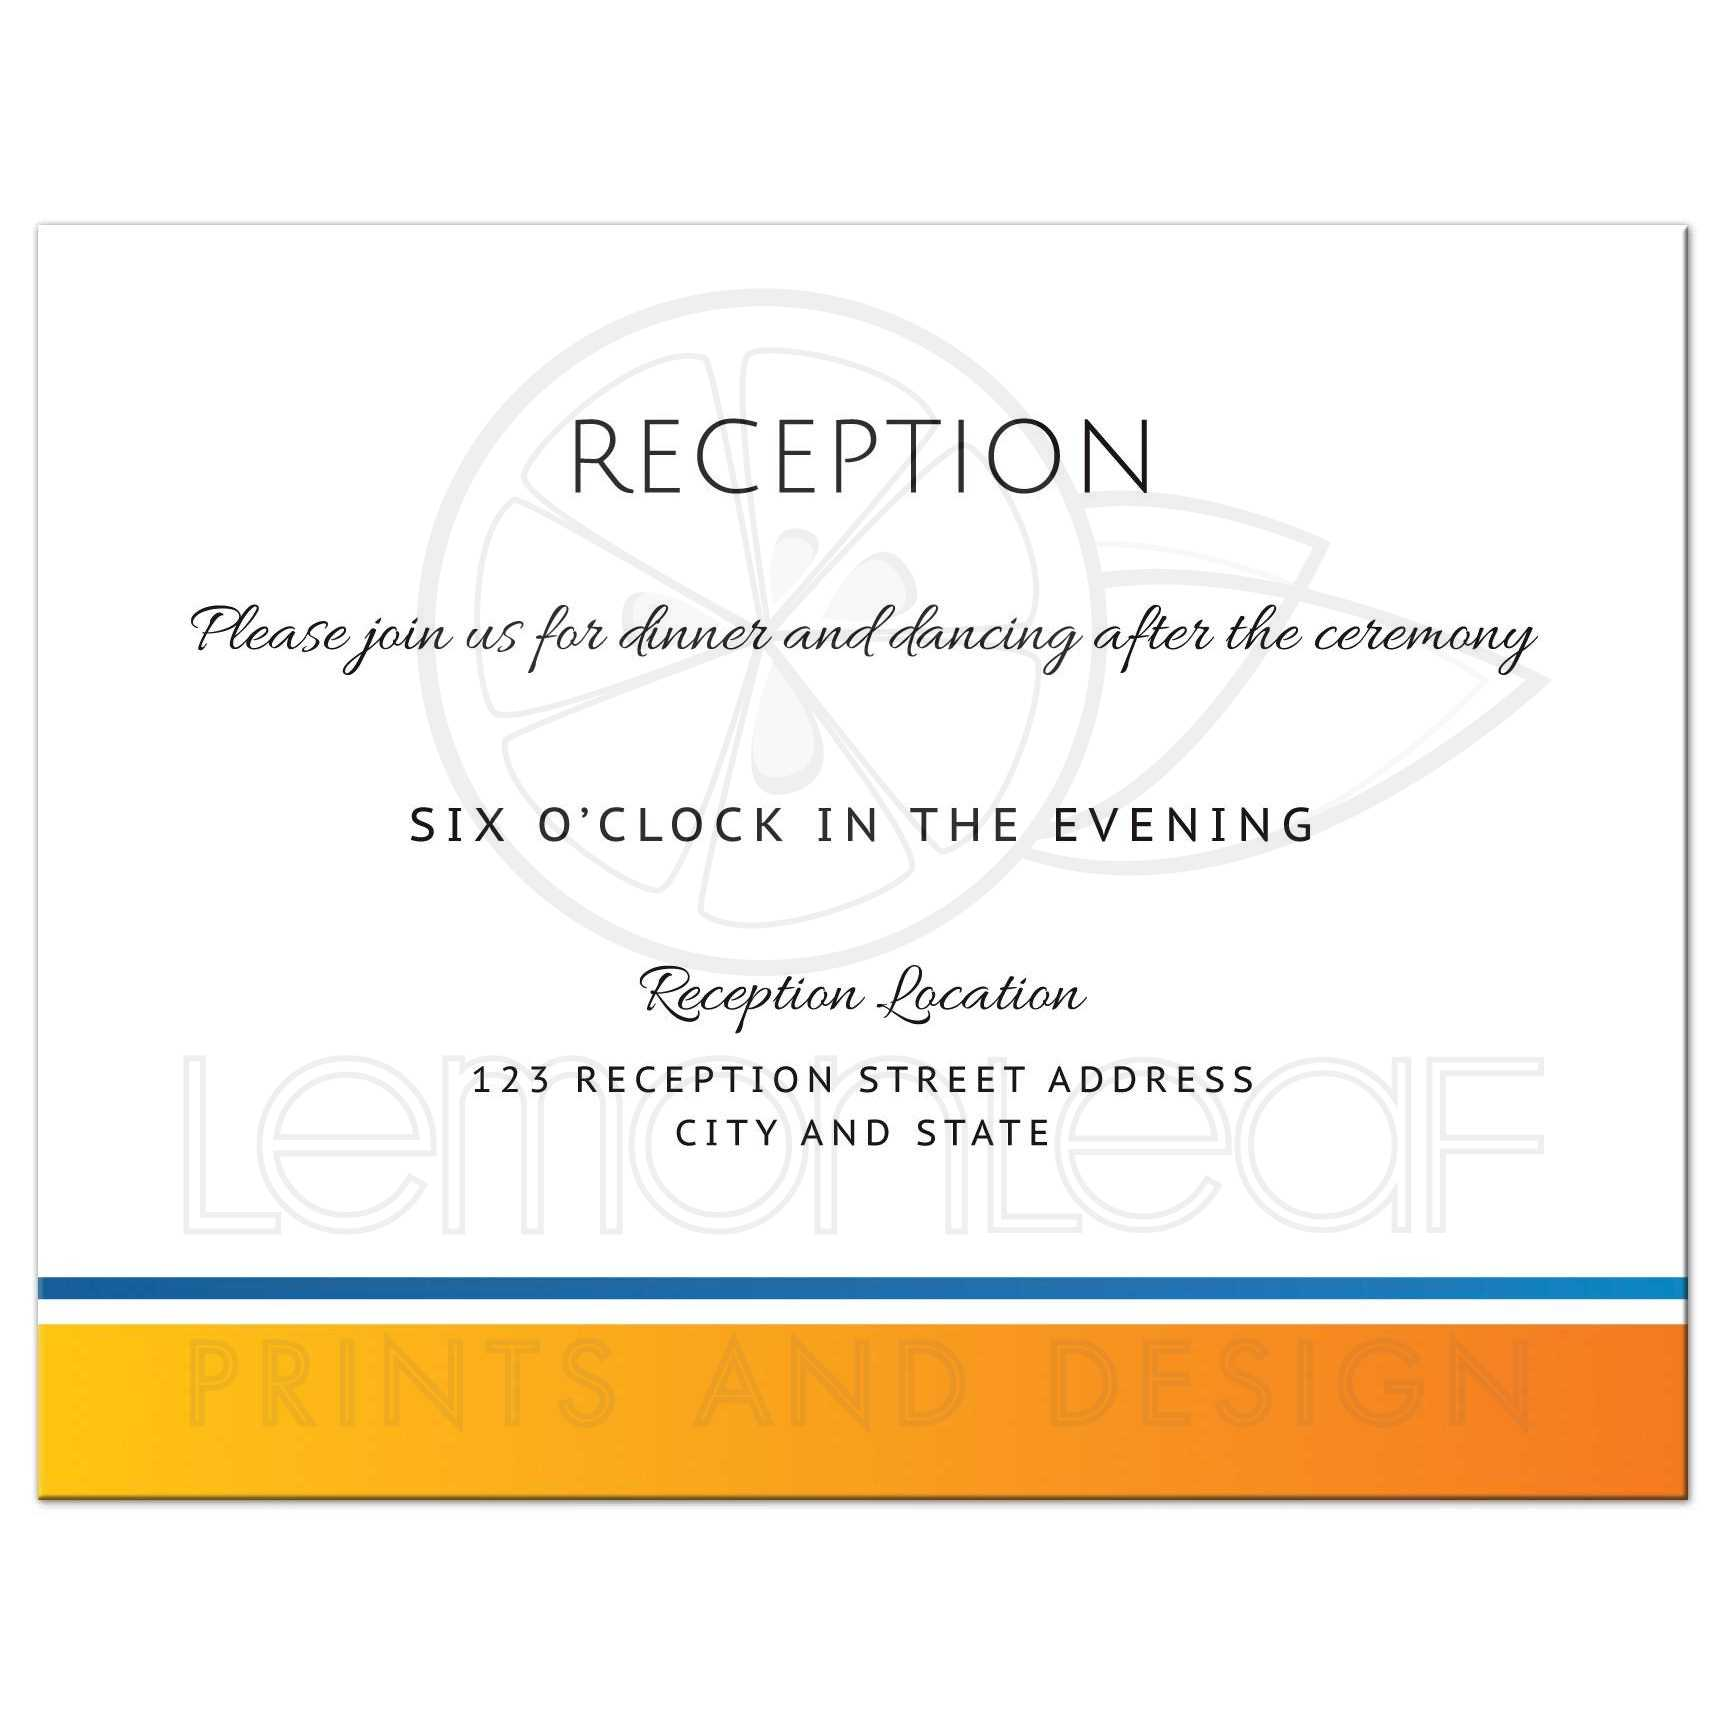 modern wedding reception card with yellow orange and blue border matching the sun and wave